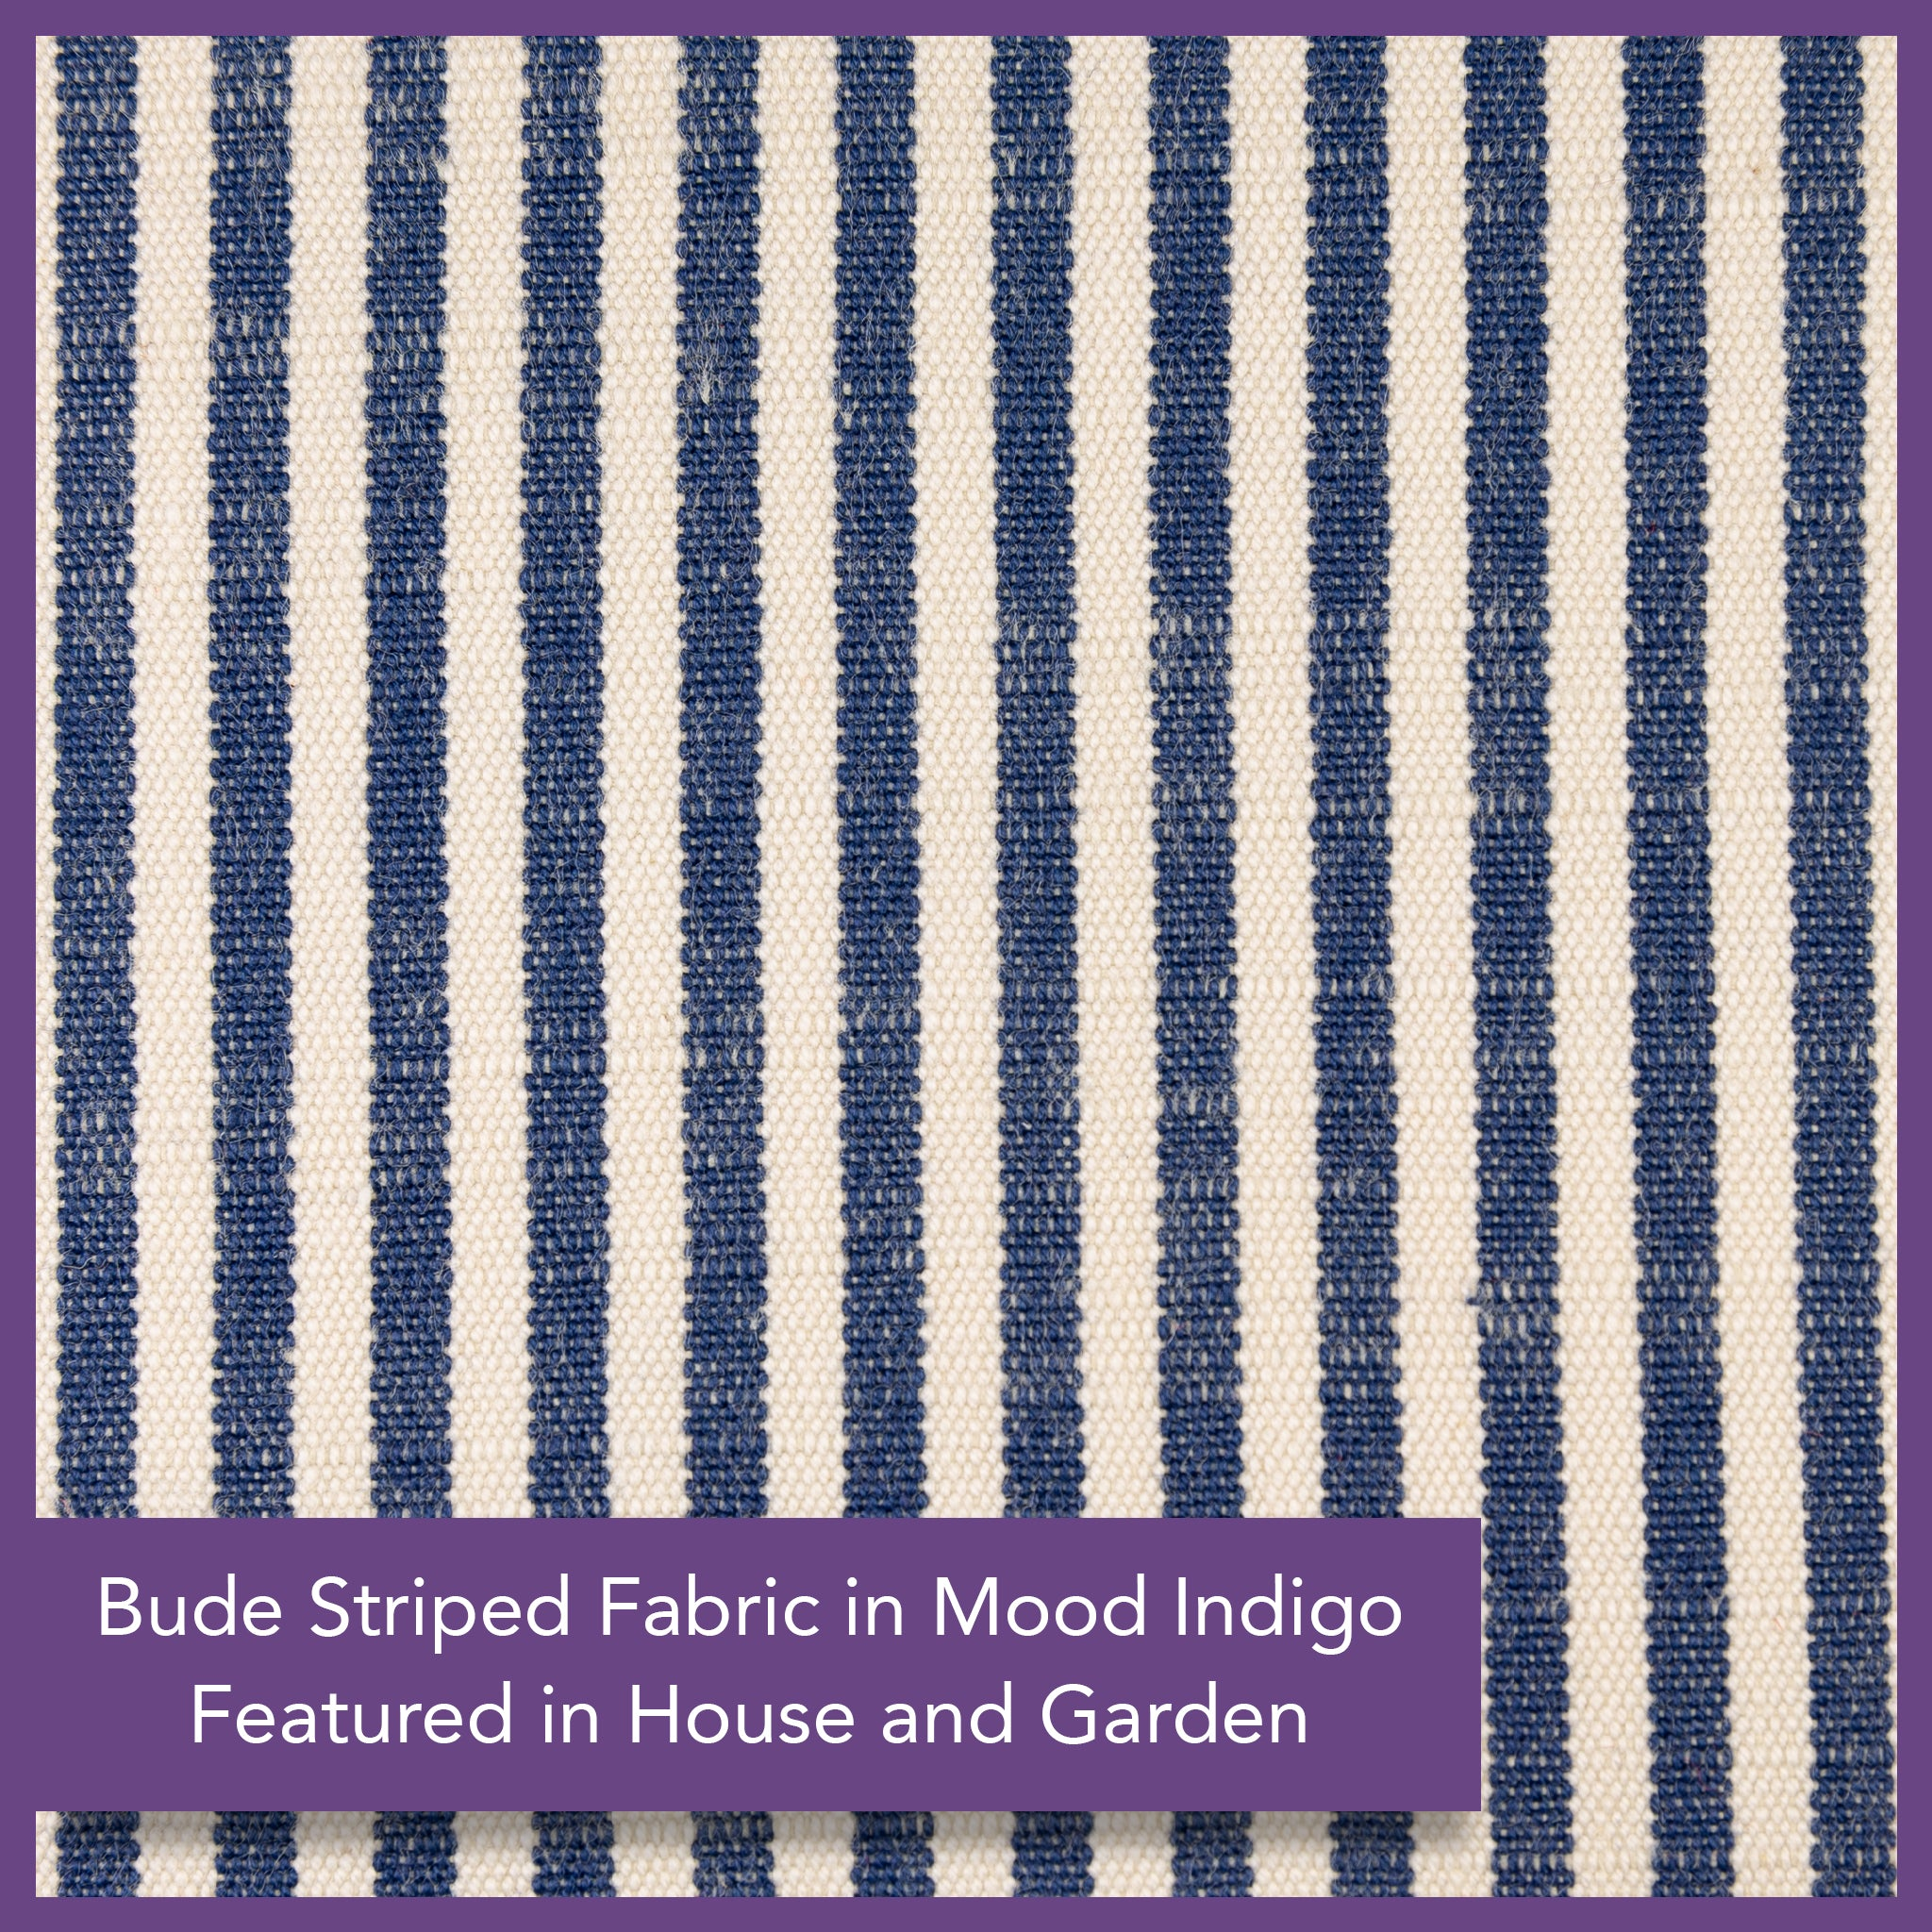 Woven Striped Fabric - Bude - Mood Indigo